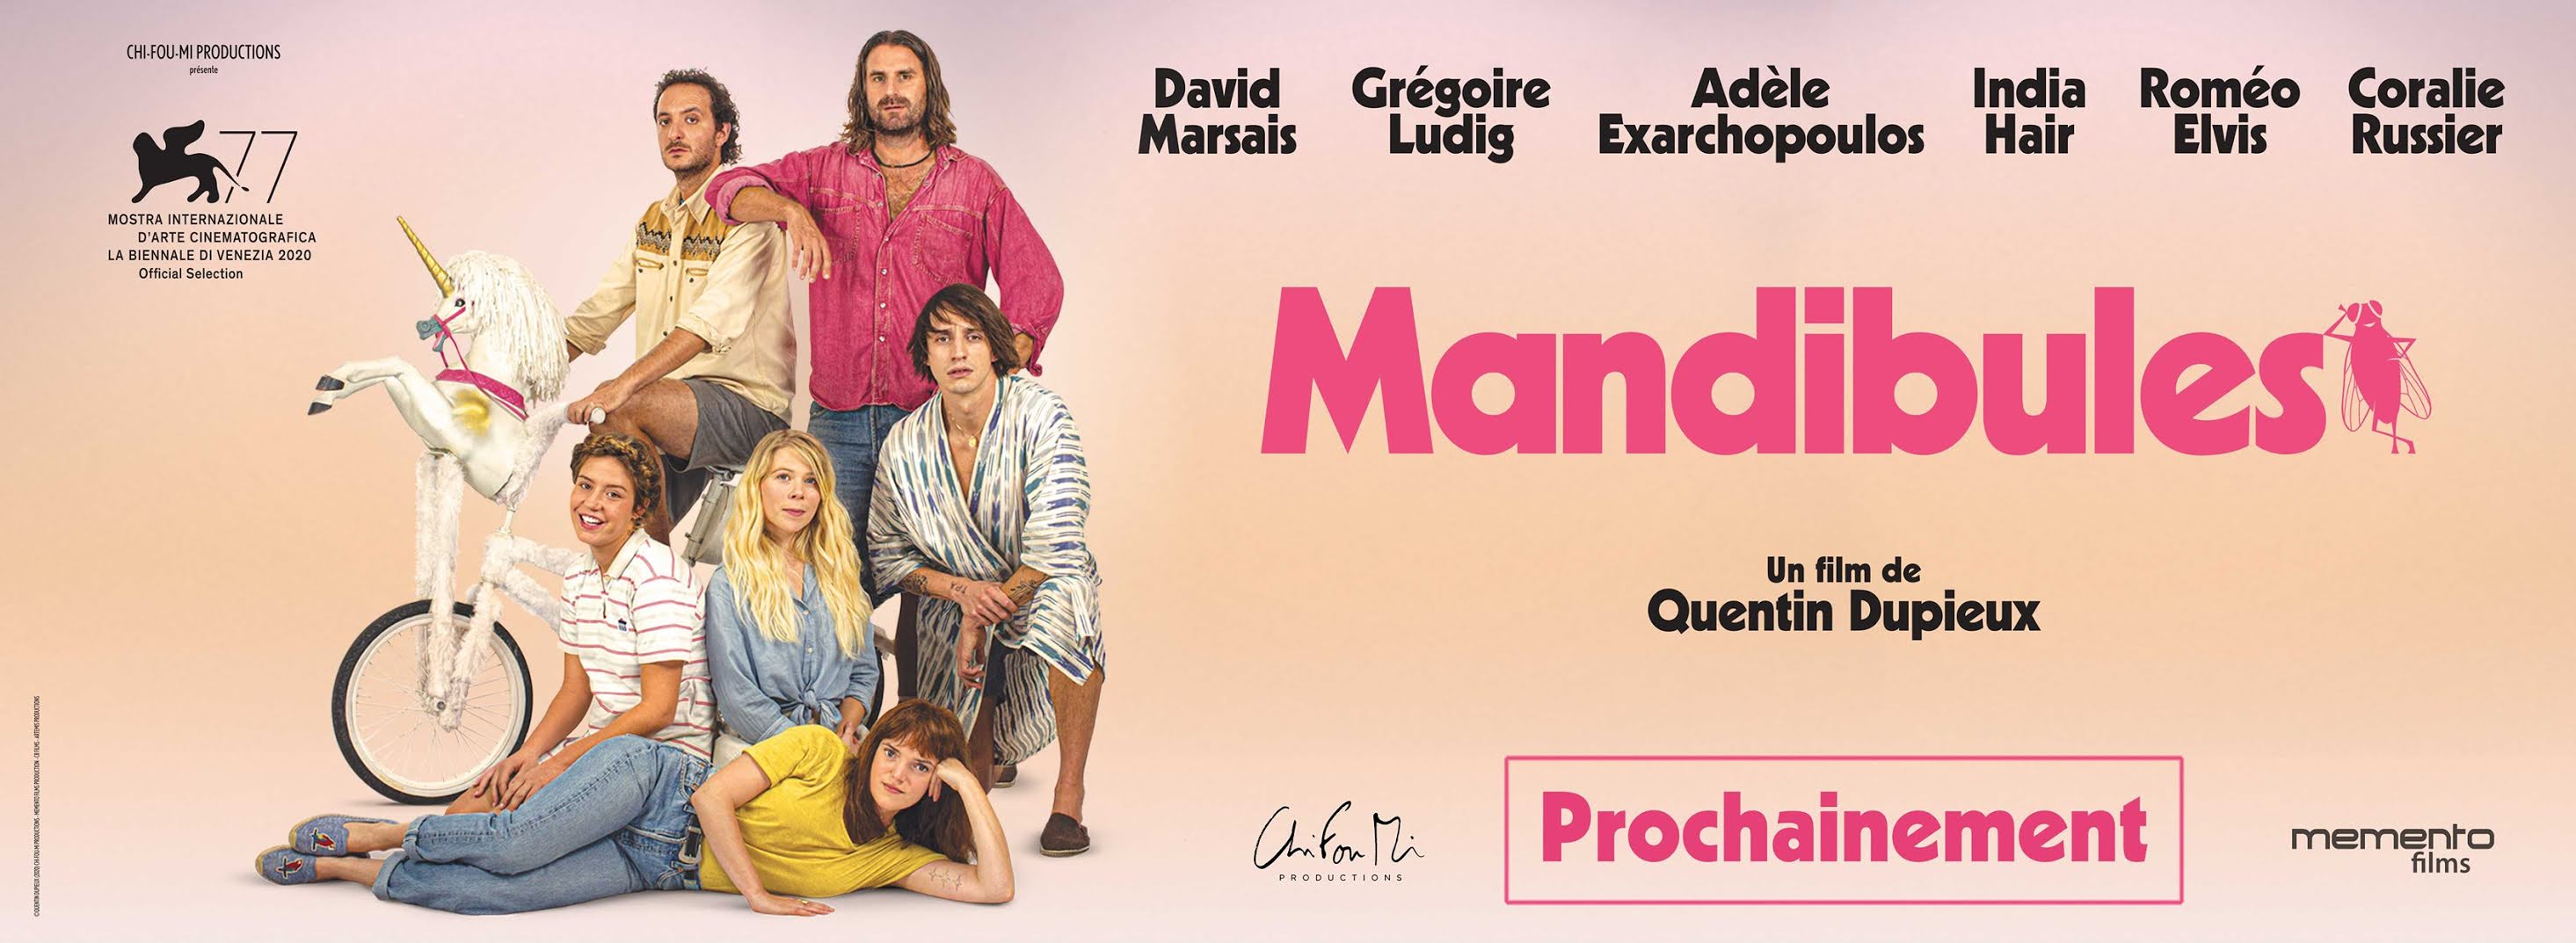 mand poster